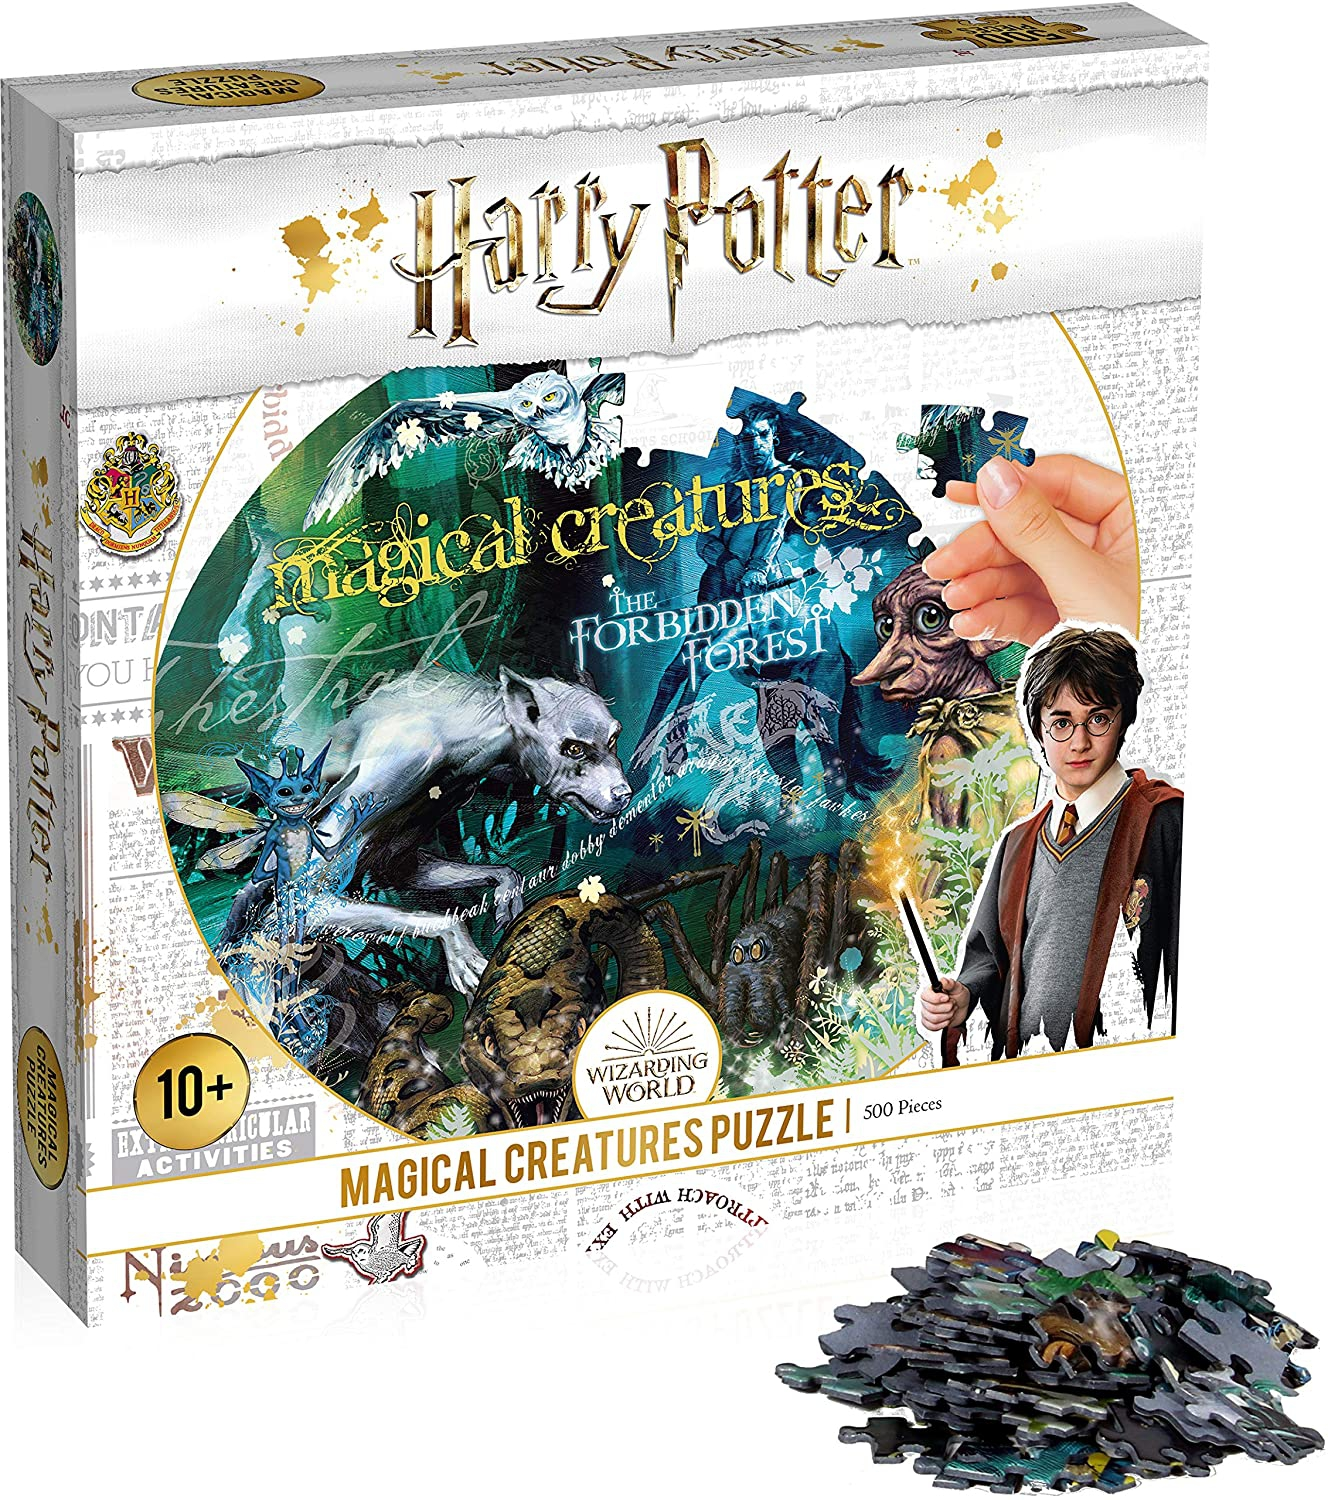 Harry Potter Collectors Round Magical Creatures 500 Piece Jigsaw Puzzle Game